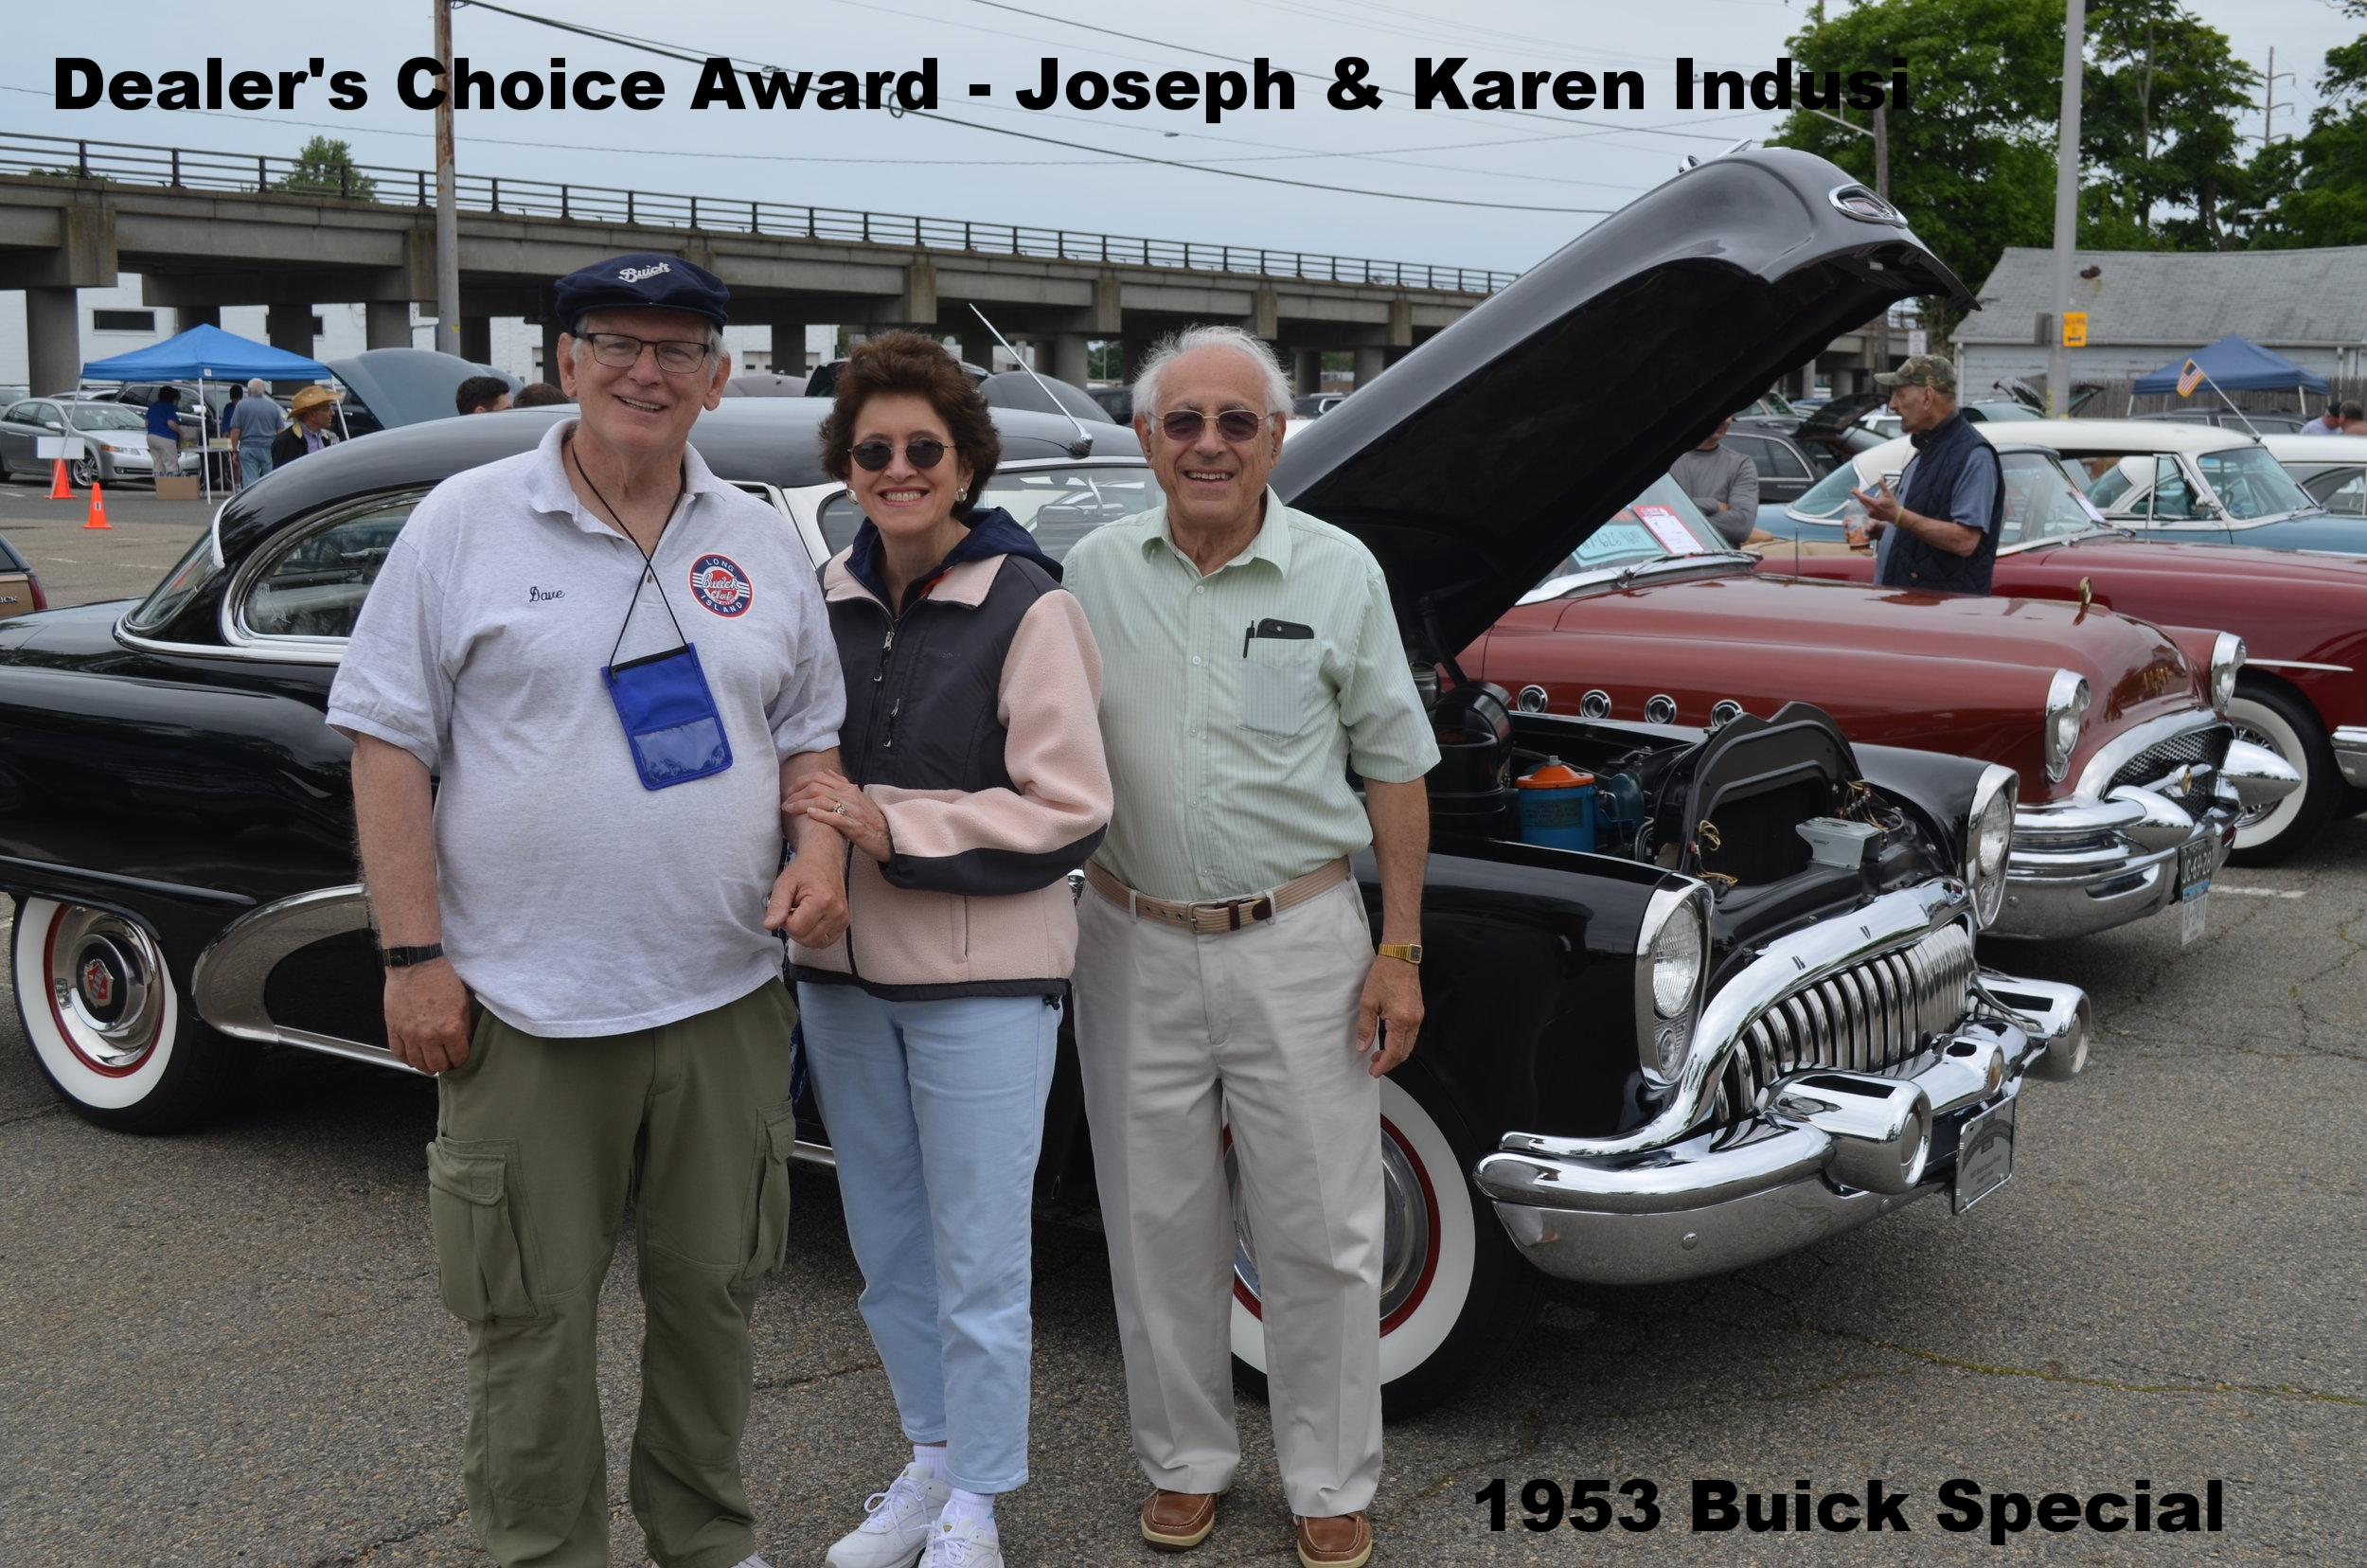 Dealer's Choice Award - Joseph & Karen Indusi - 1953 Special